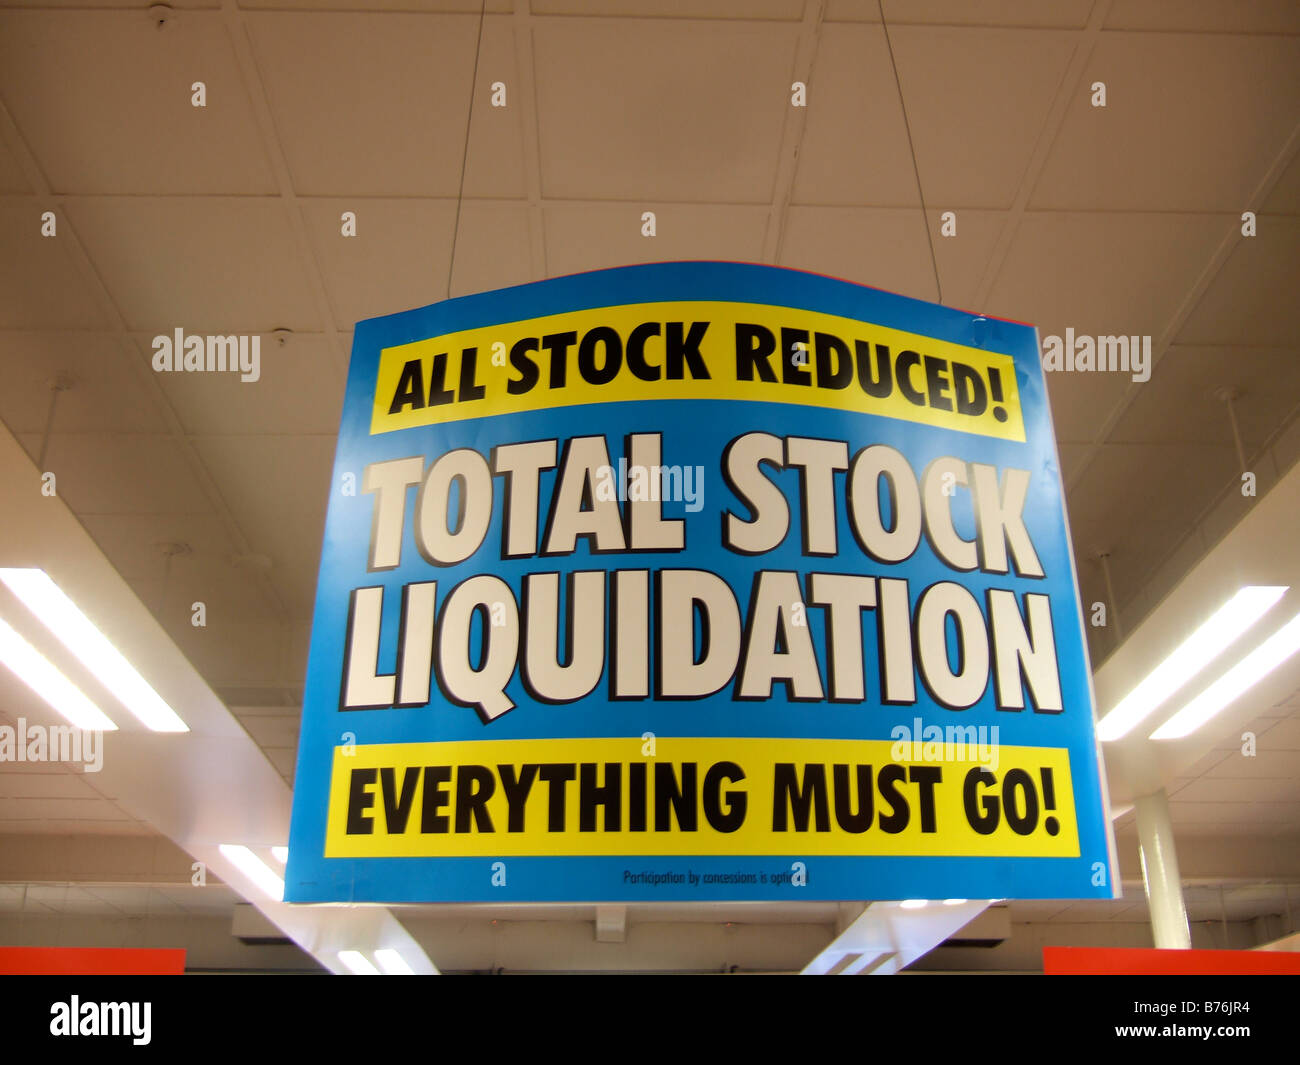 TOTAL STOCK LIQUIDATION - signs in a store closing sale due to Liquidation. (Woolworths) - Stock Image